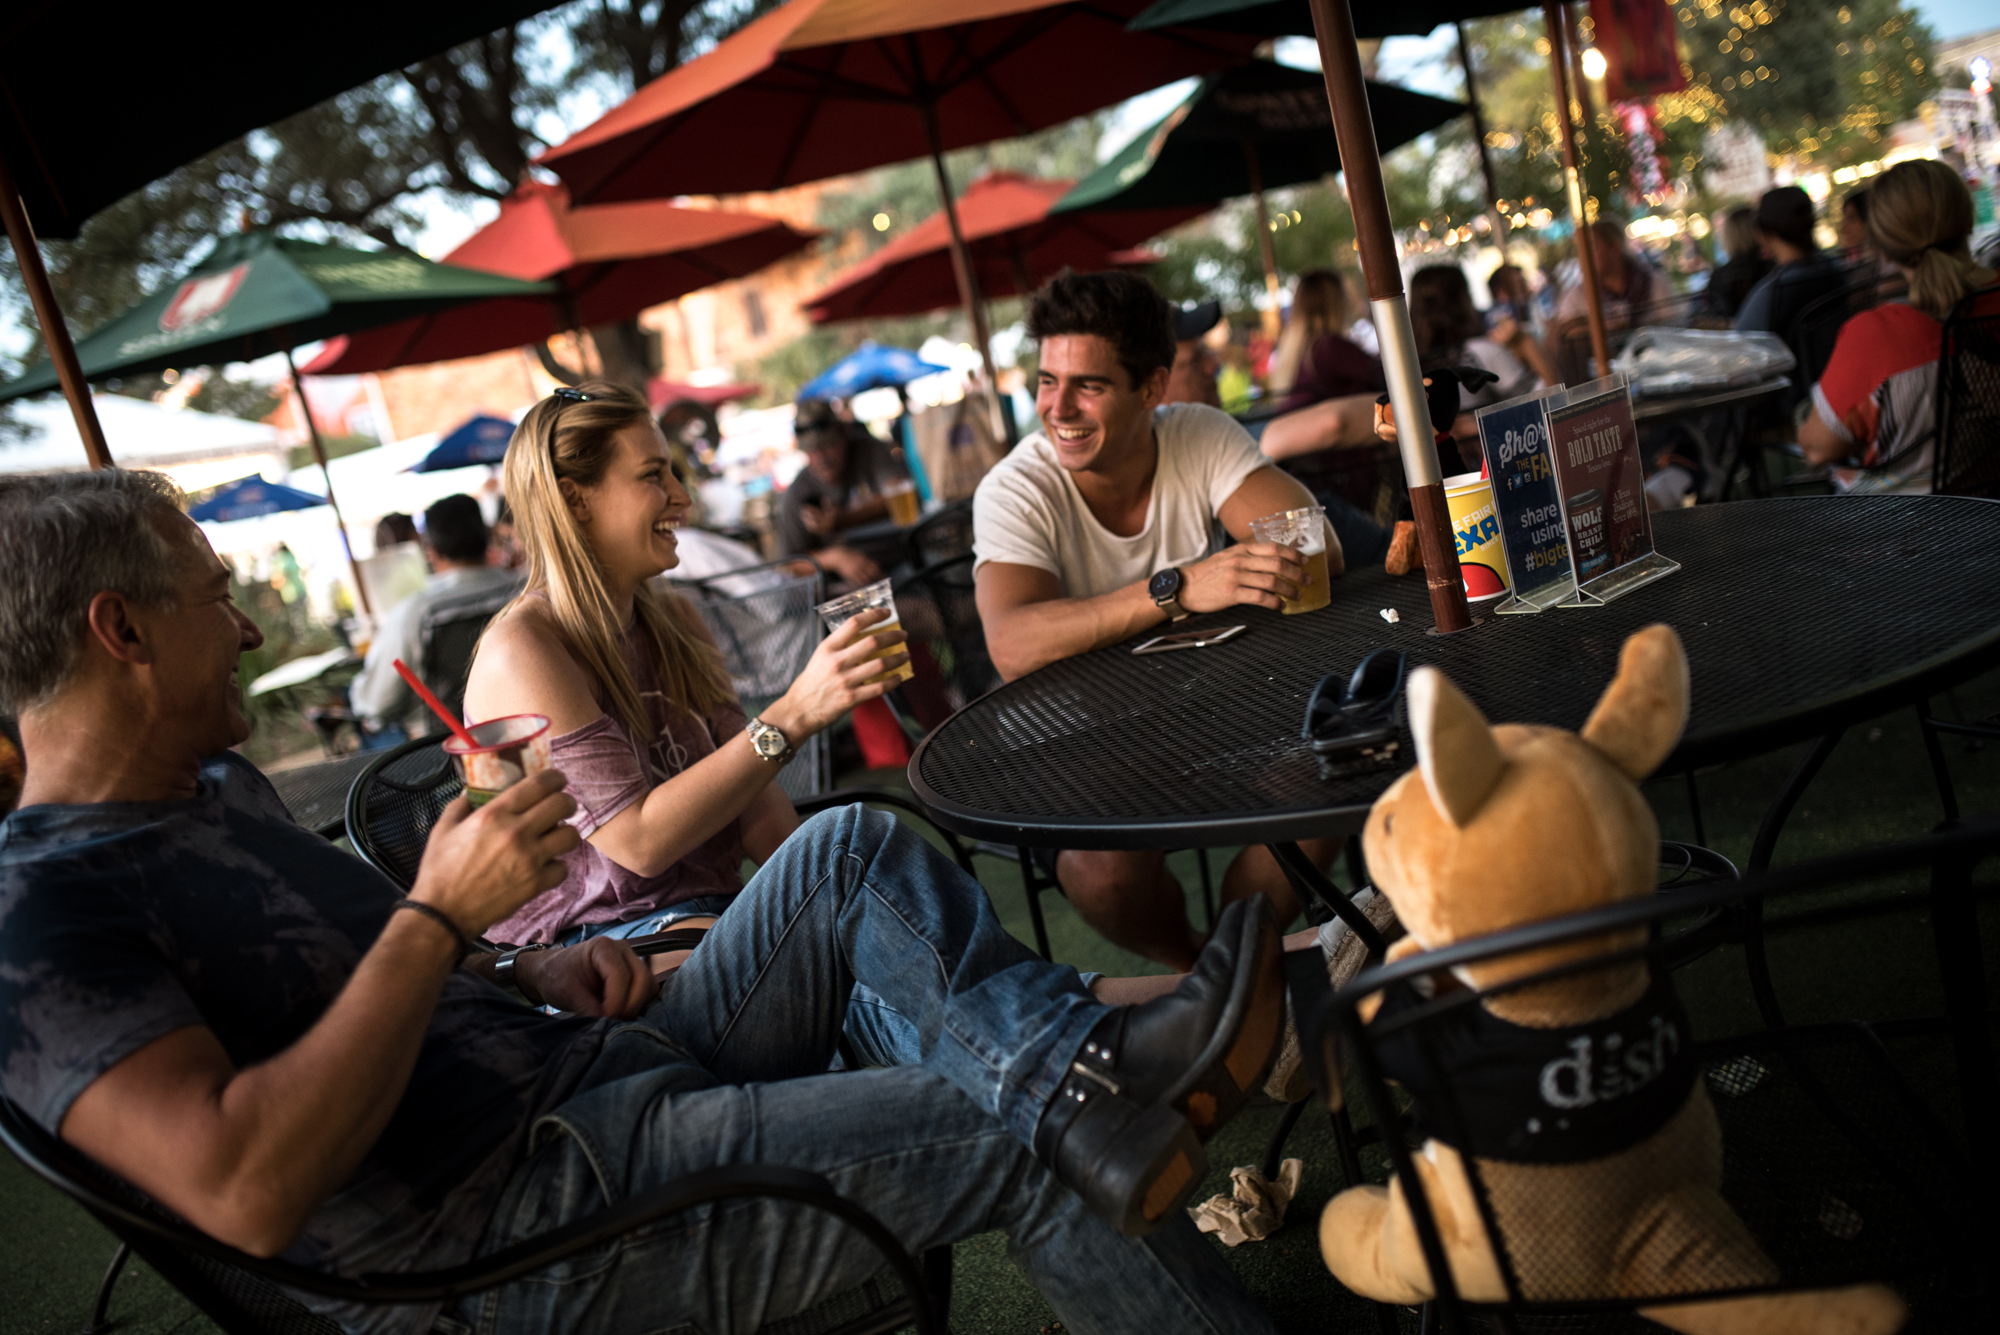 This year, the State Fair offers a wine garden and the Magnolia Beer Garden.